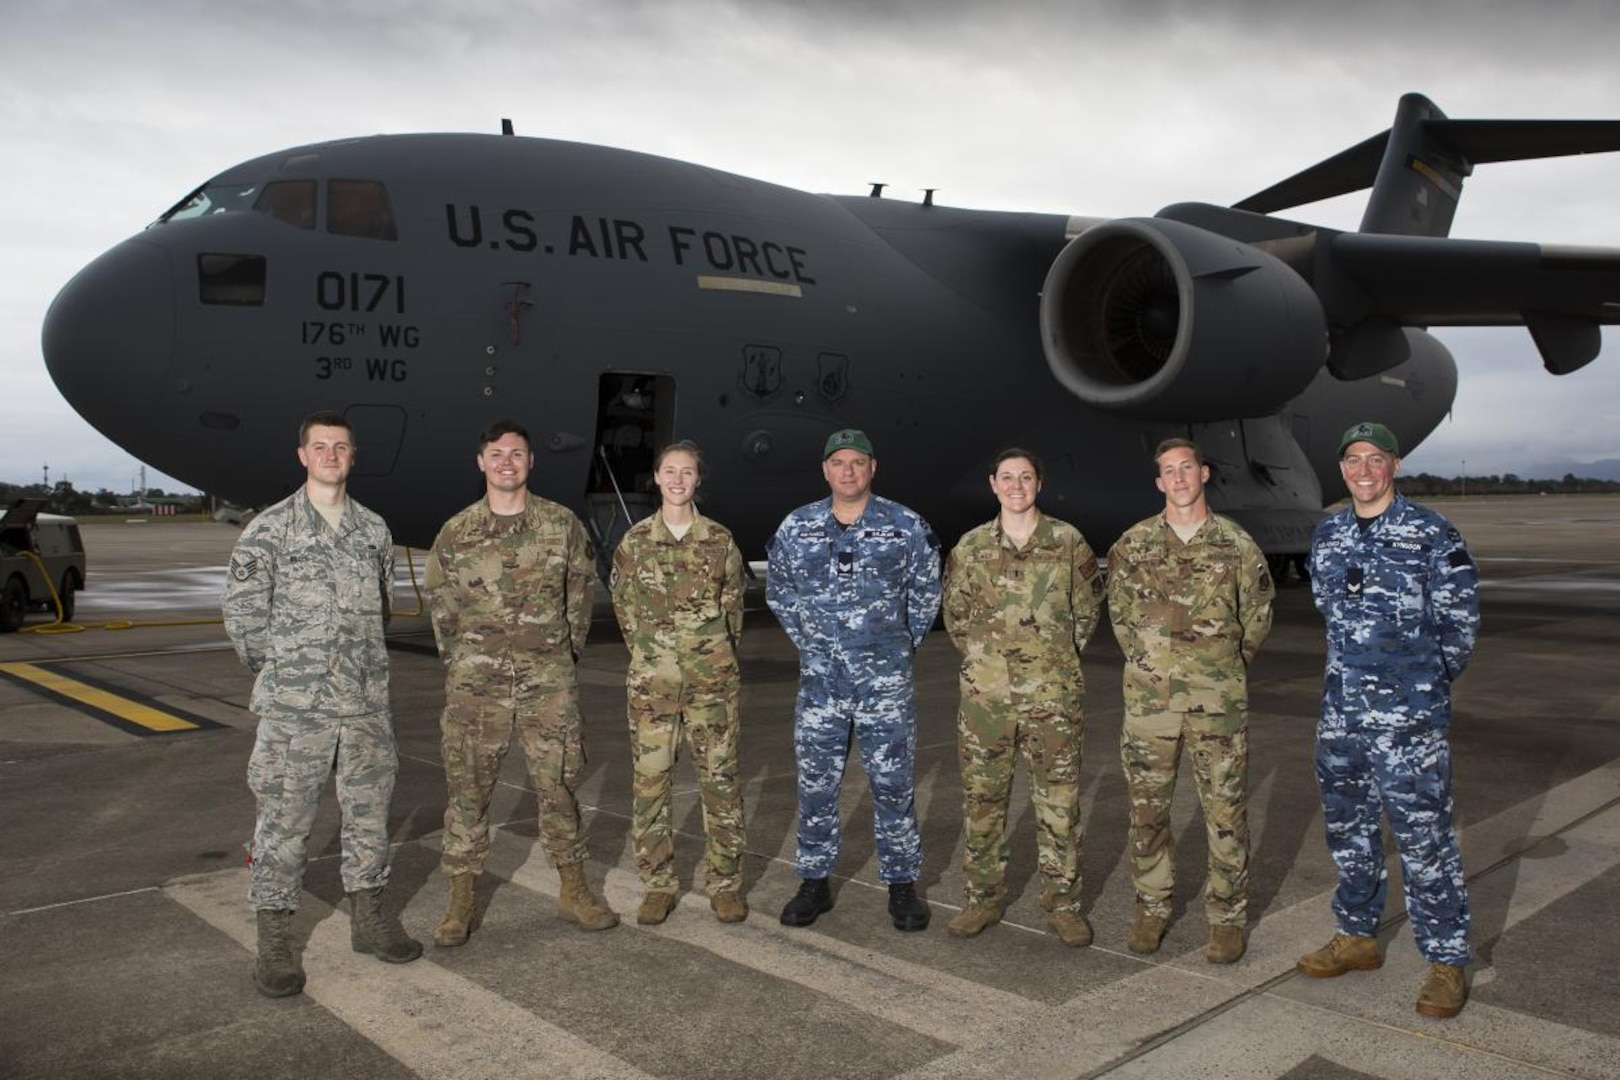 Royal Australian Air Force and US Air Force Technicians on the Tools Together